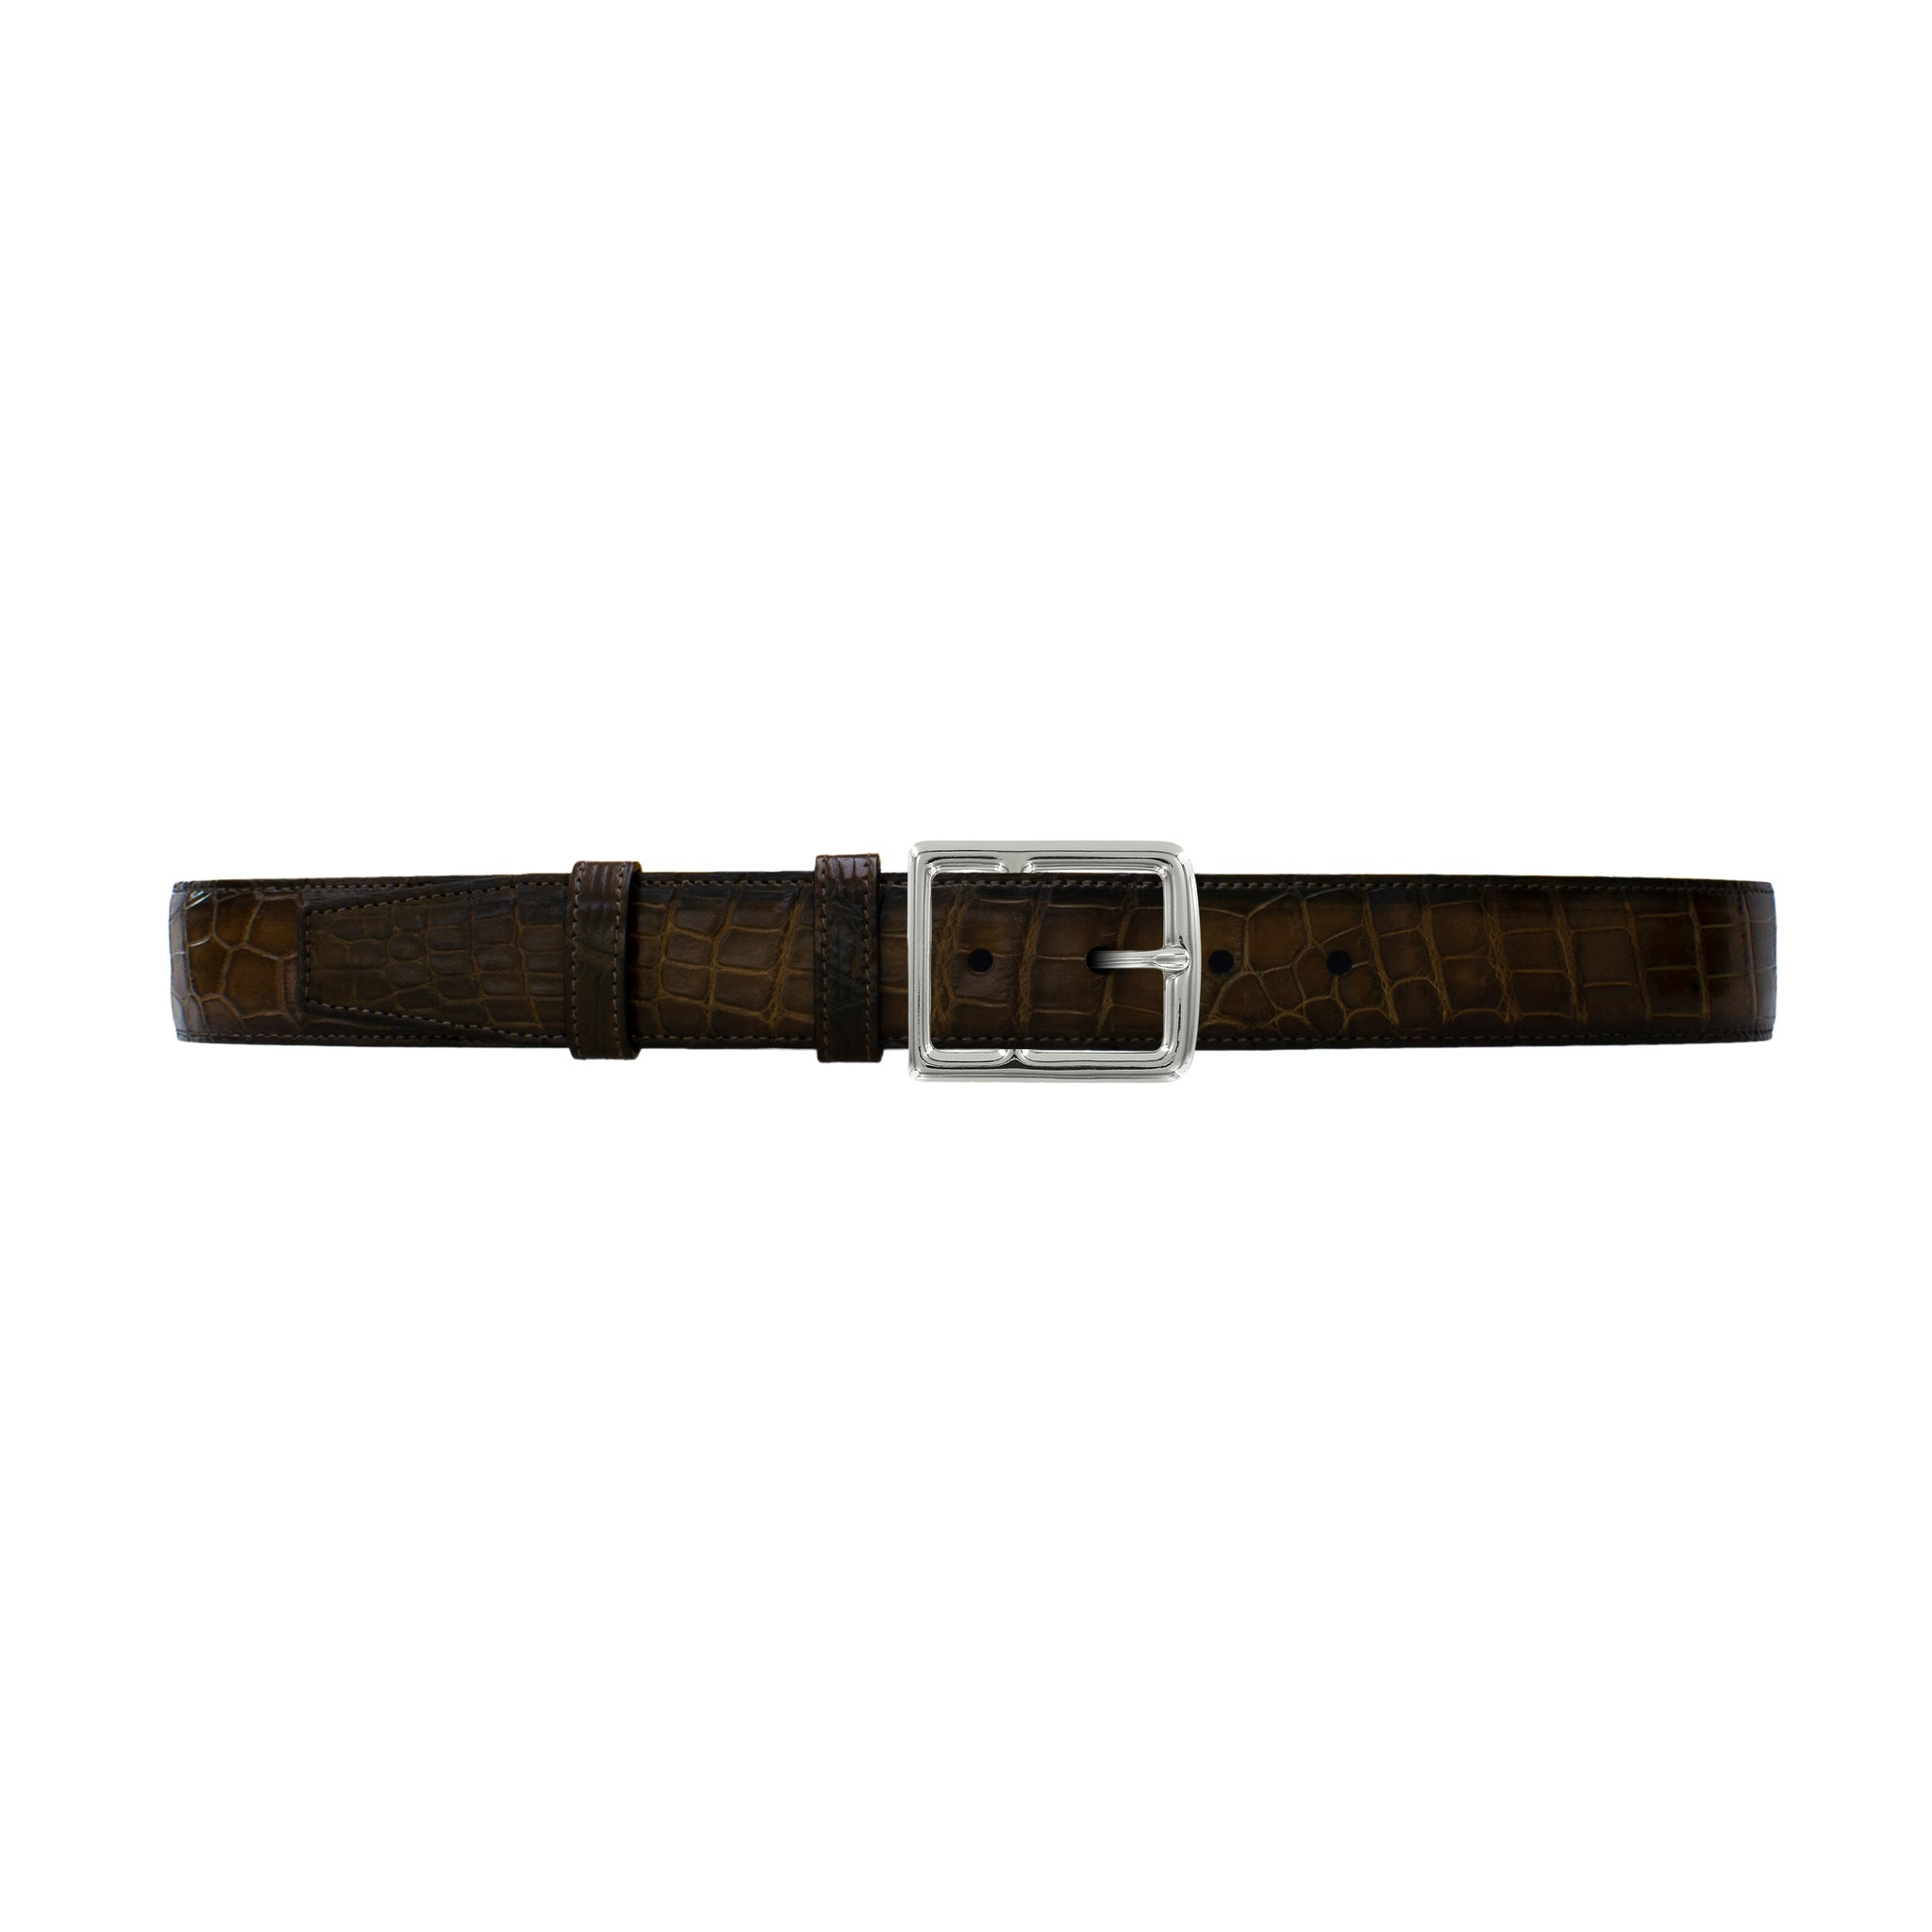 "1 1/2"" Walnut Patina Belt with Crawford Casual Buckle in Polished Nickel"